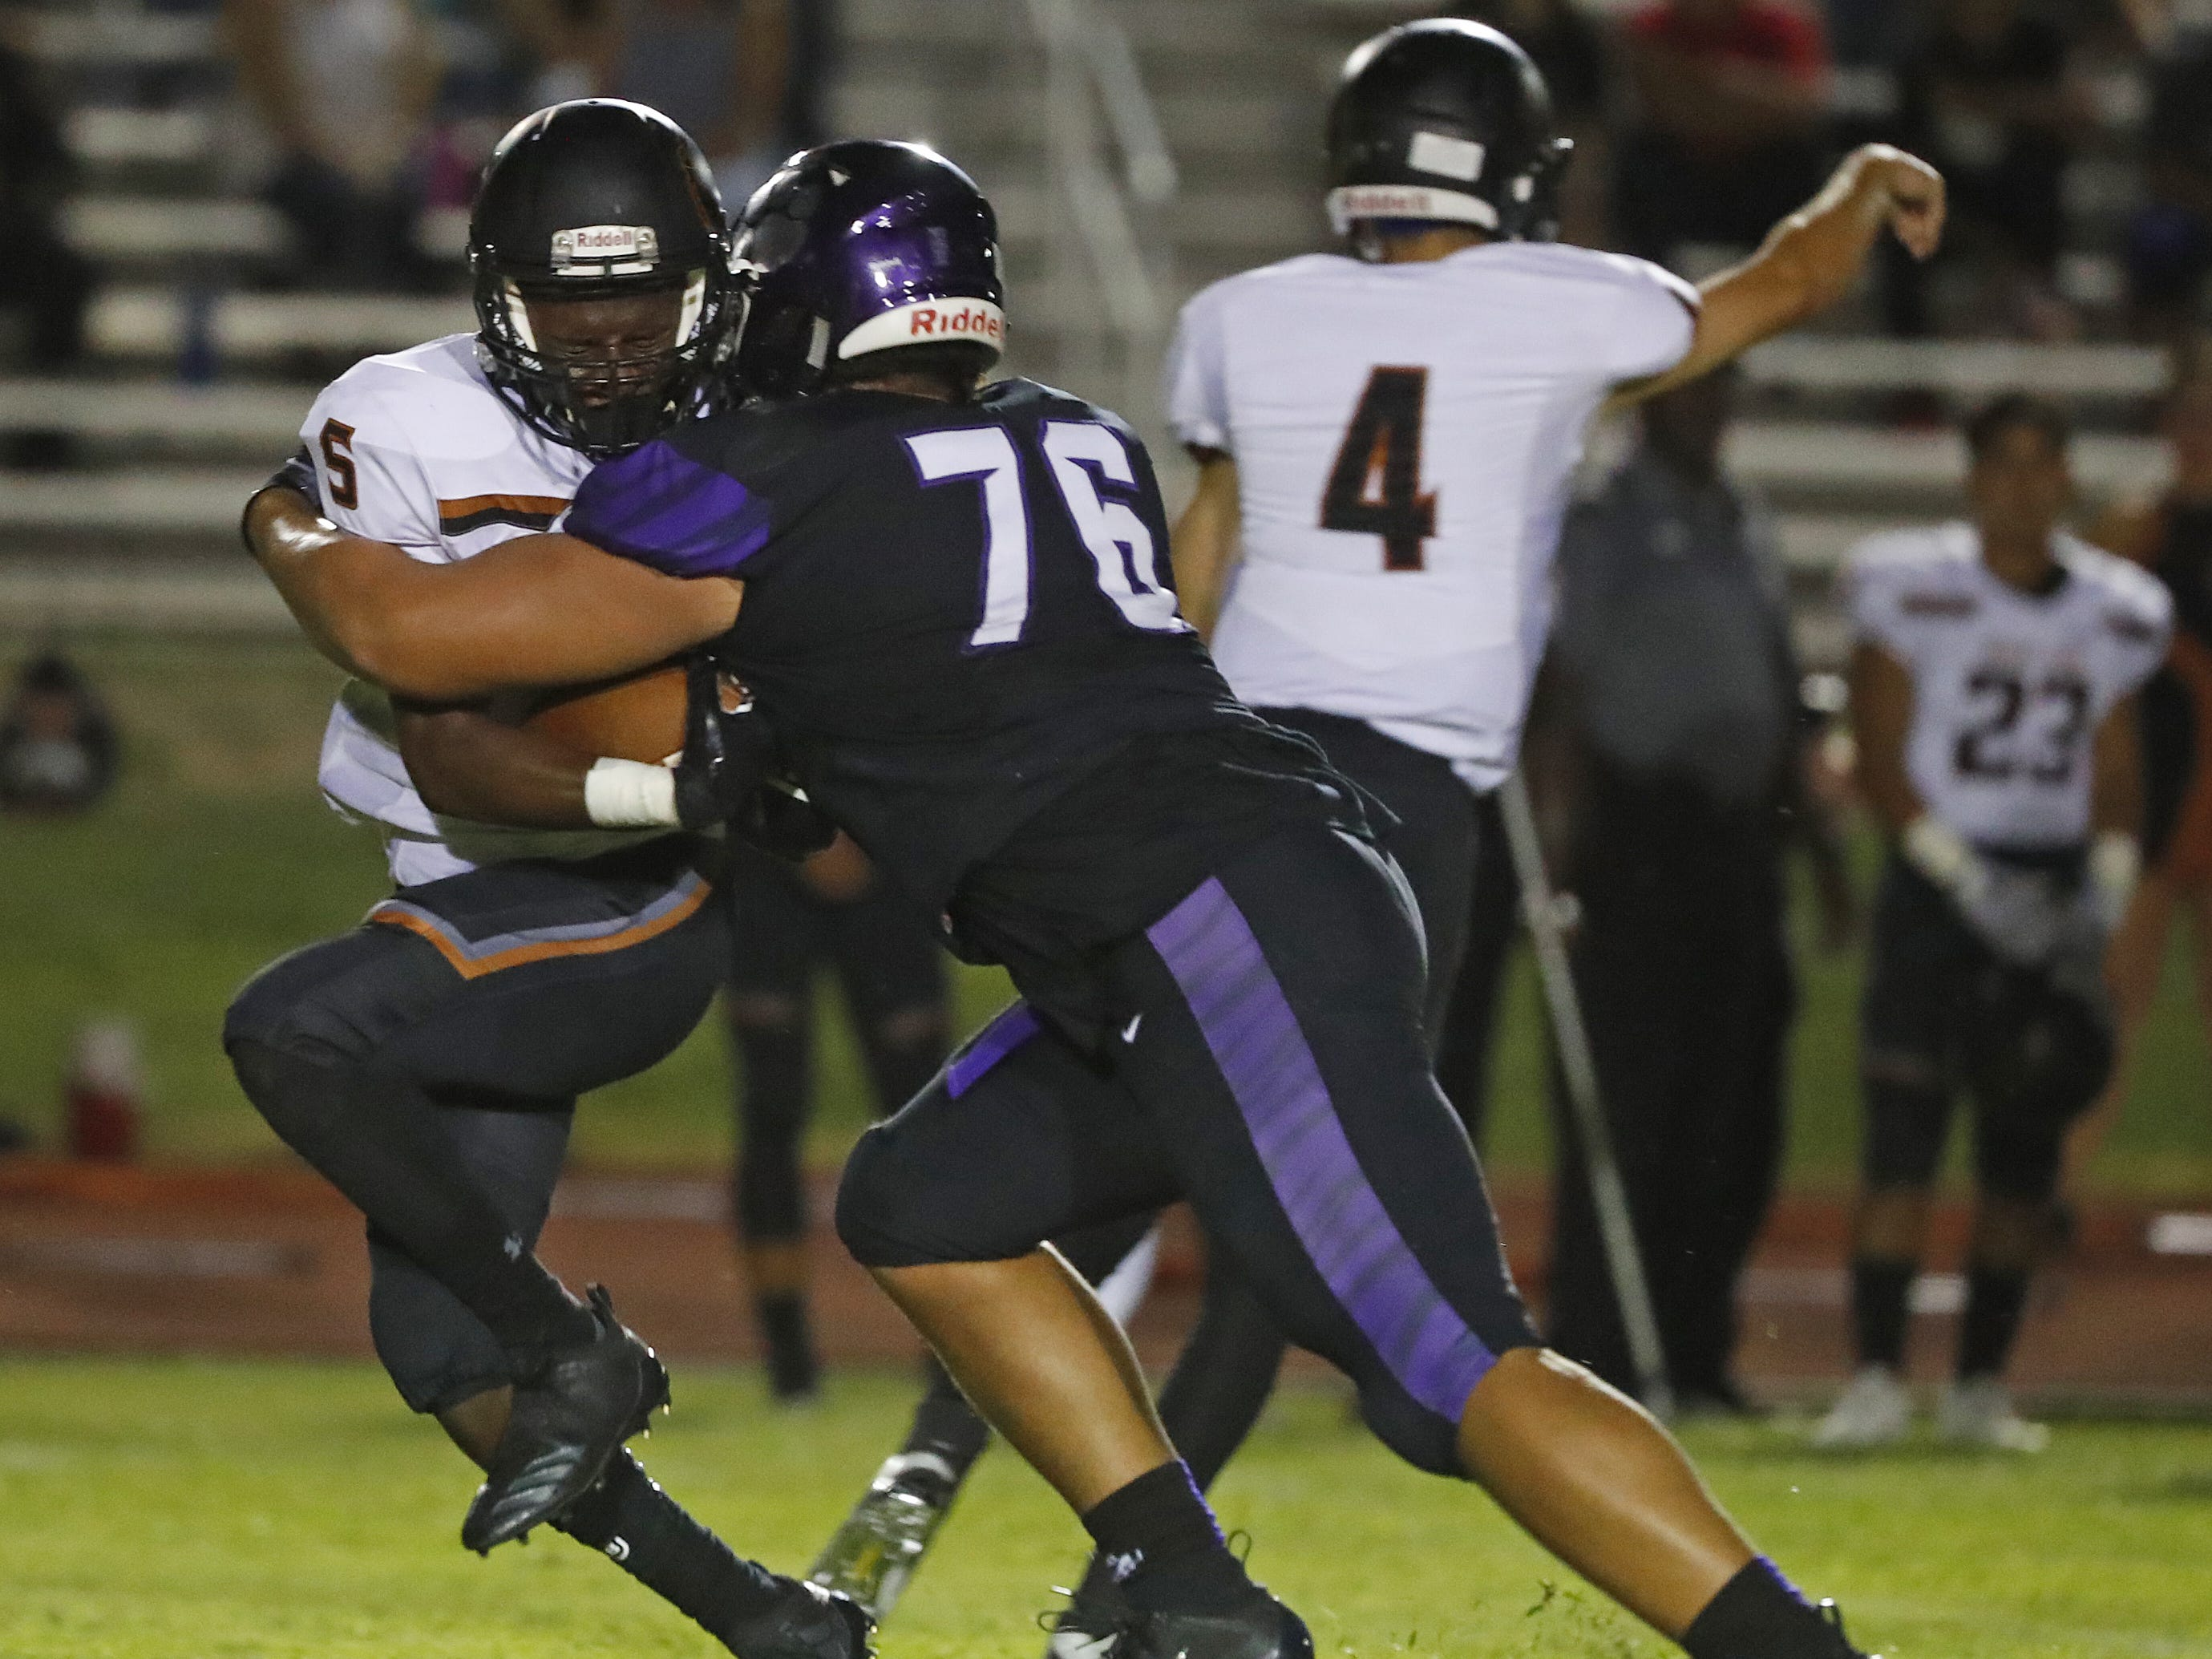 Millennium's Anthonie Cooper (76) tackles Desert Edge's Andrew Patterson (5) during a game at Millennium High School in Goodyear, Ariz. on Sept. 7, 2018.